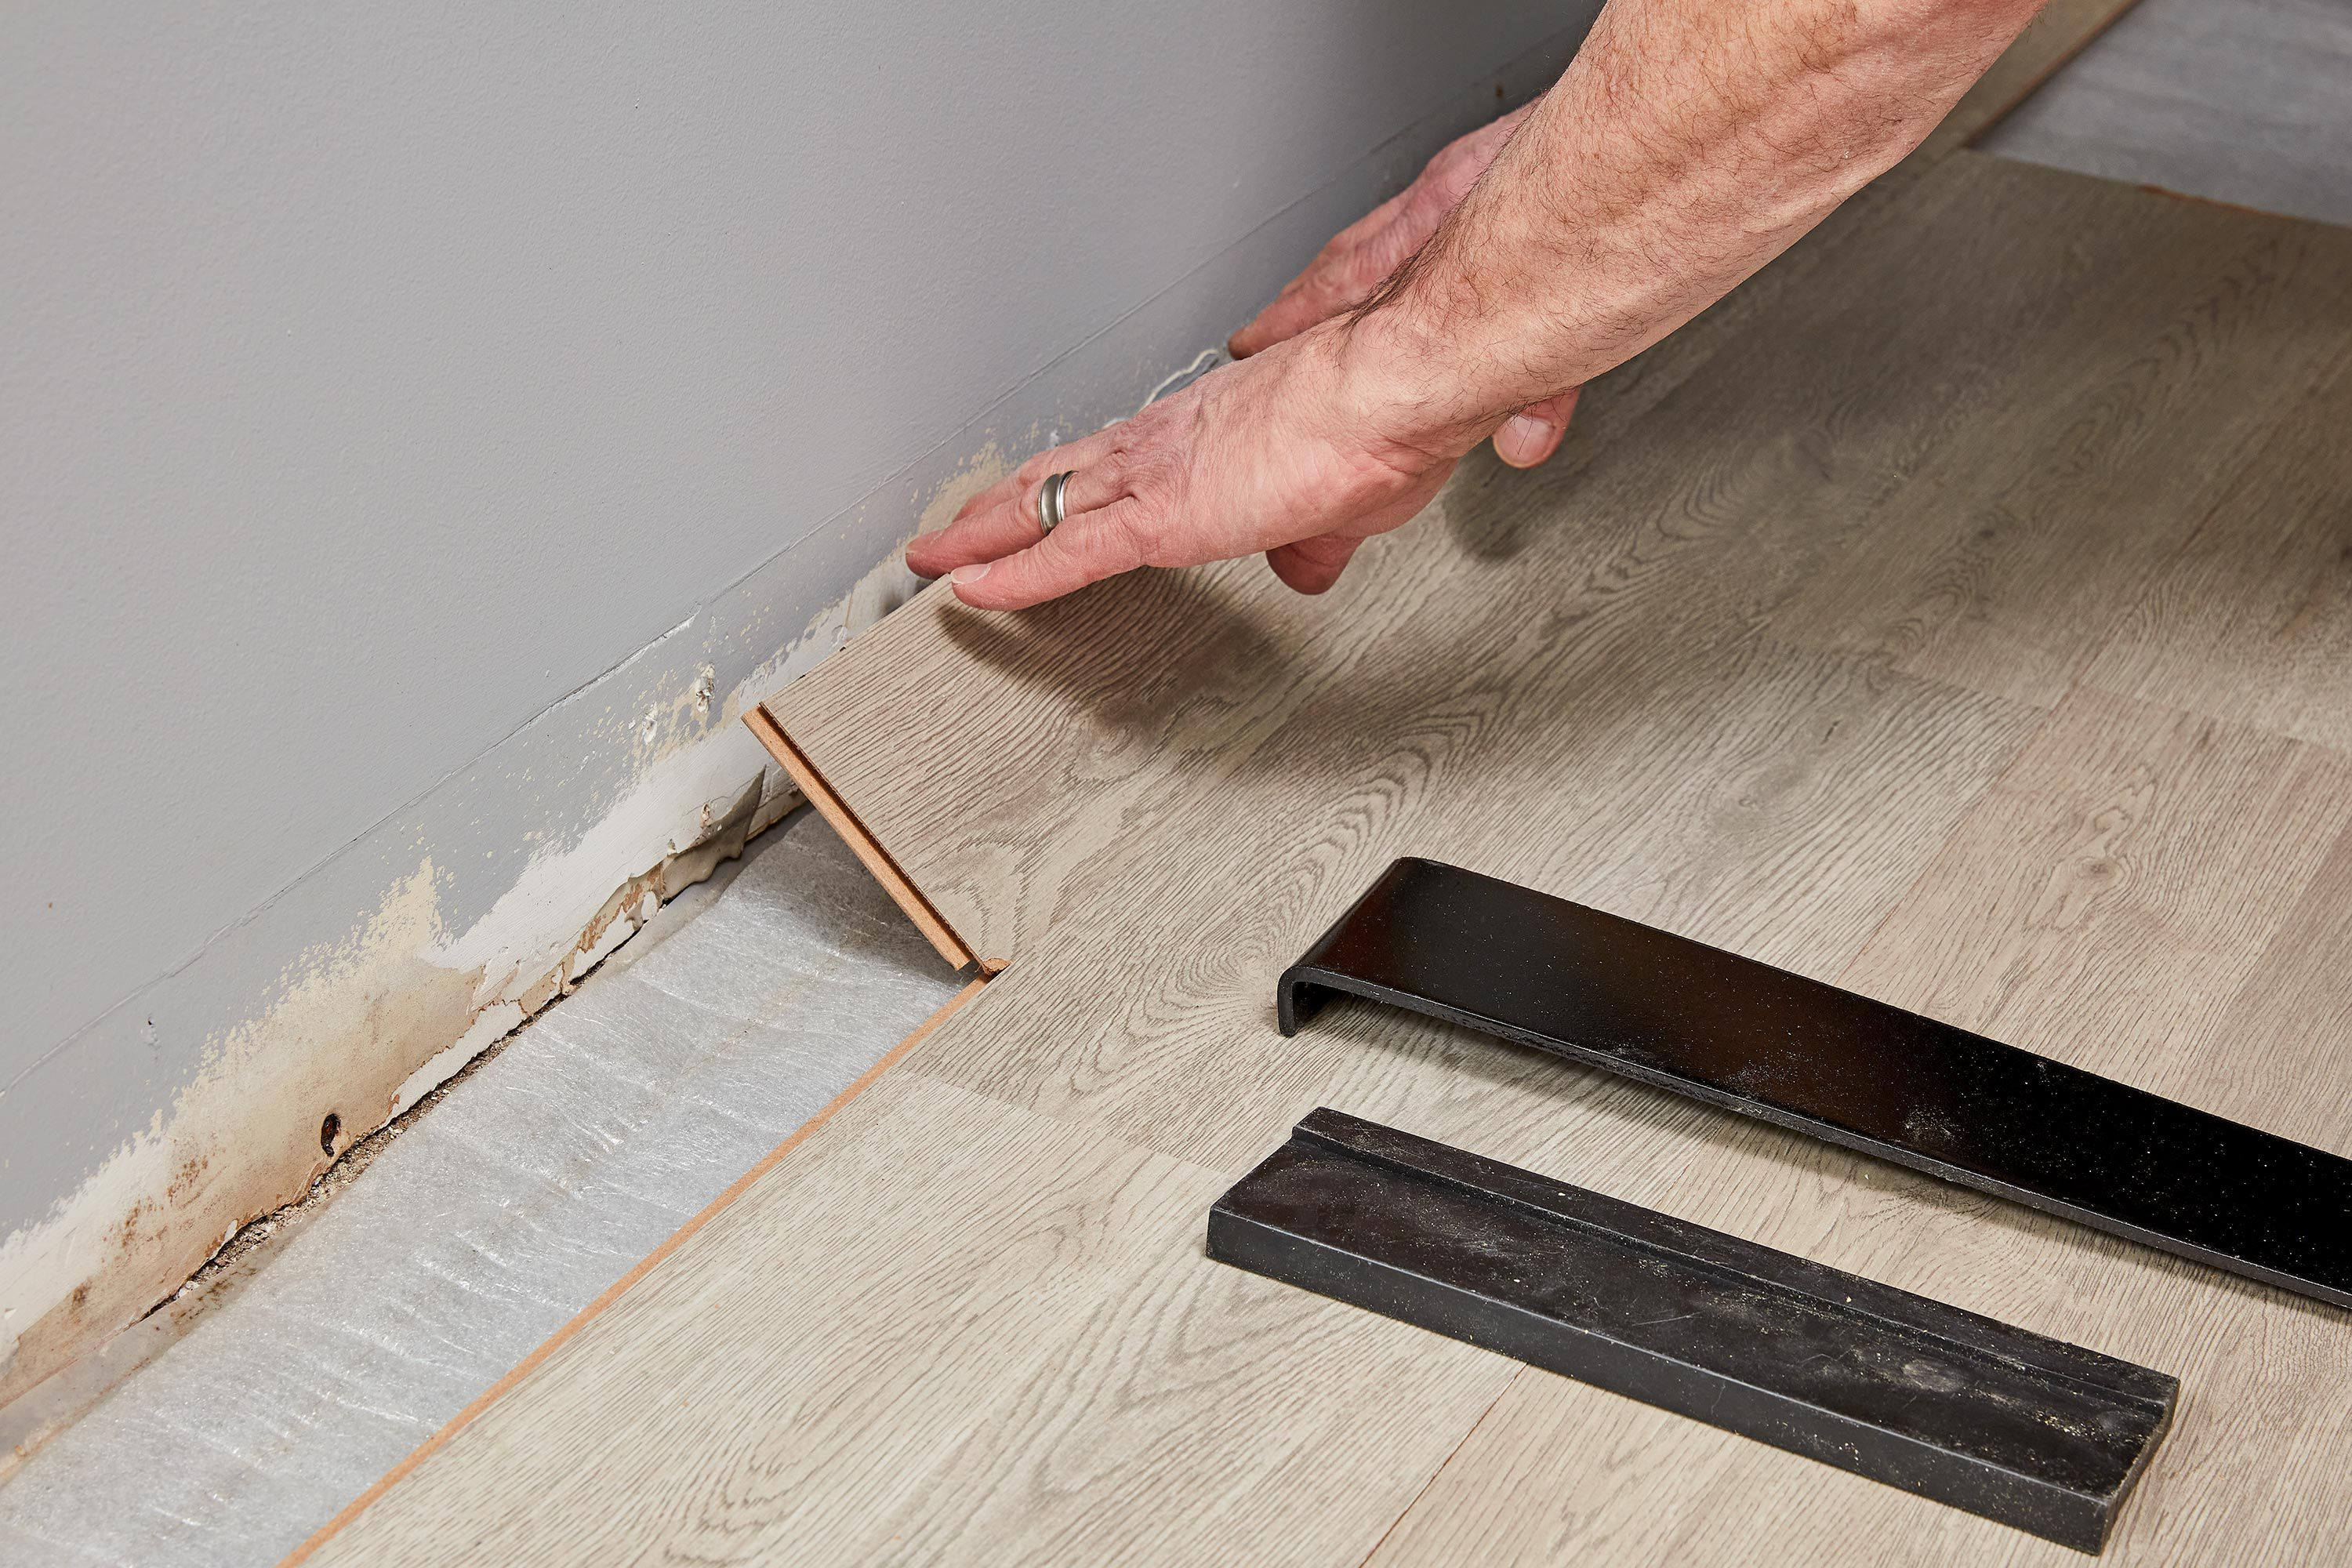 How To Install Laminate Flooring, How Easy Is It To Install Laminate Flooring